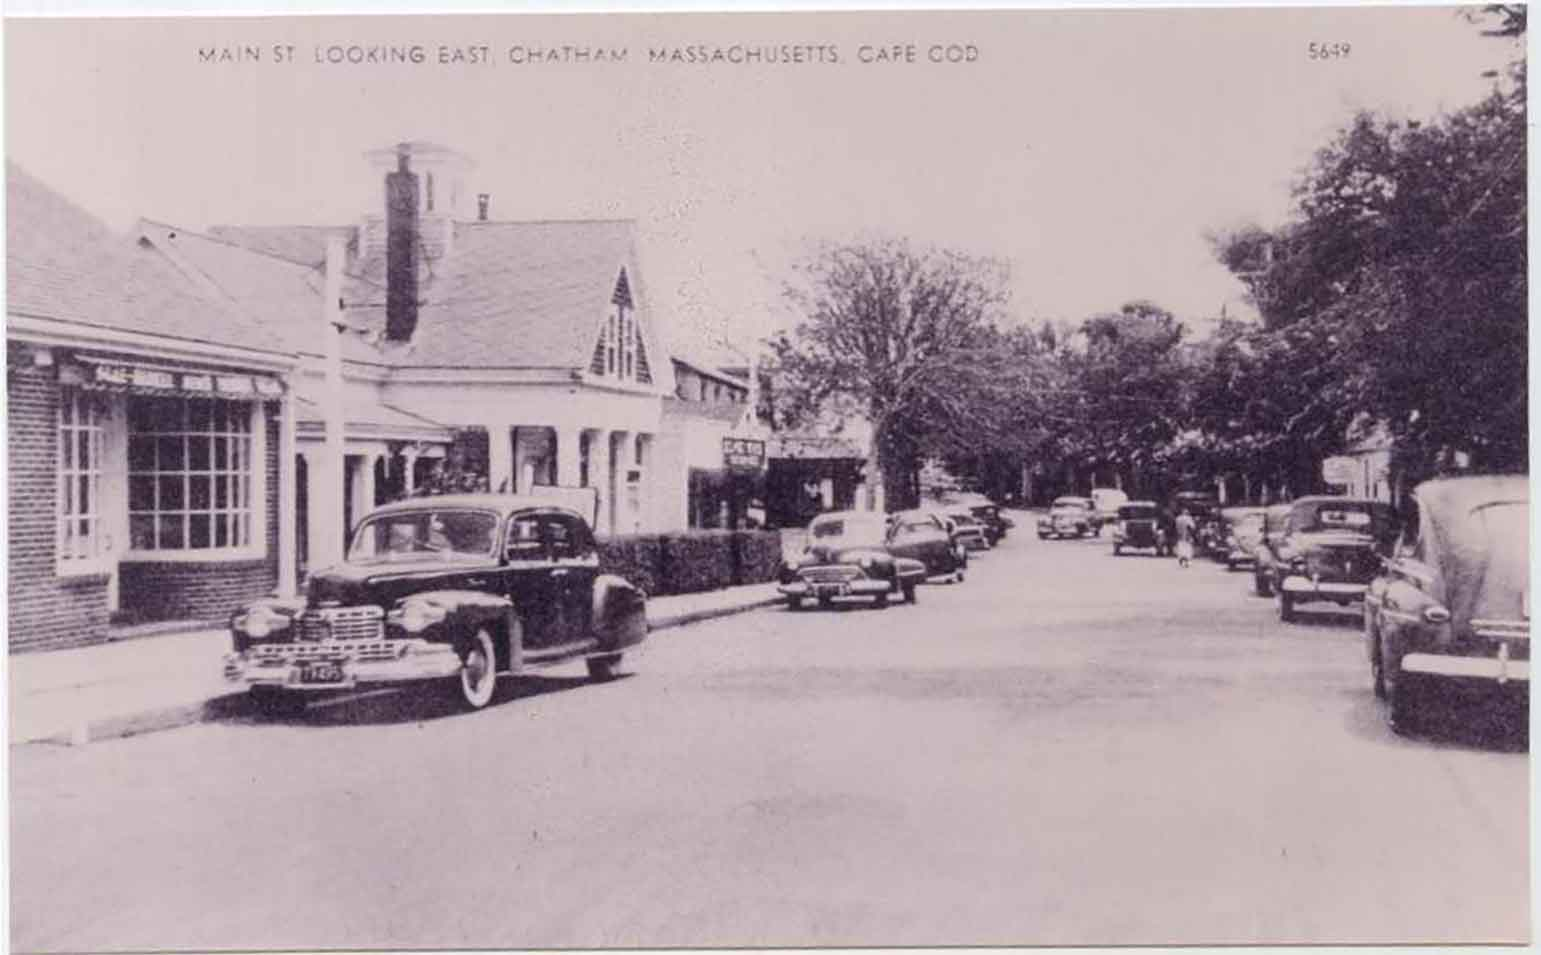 A Stroll Through Main Street History – Chatham Living By The Sea